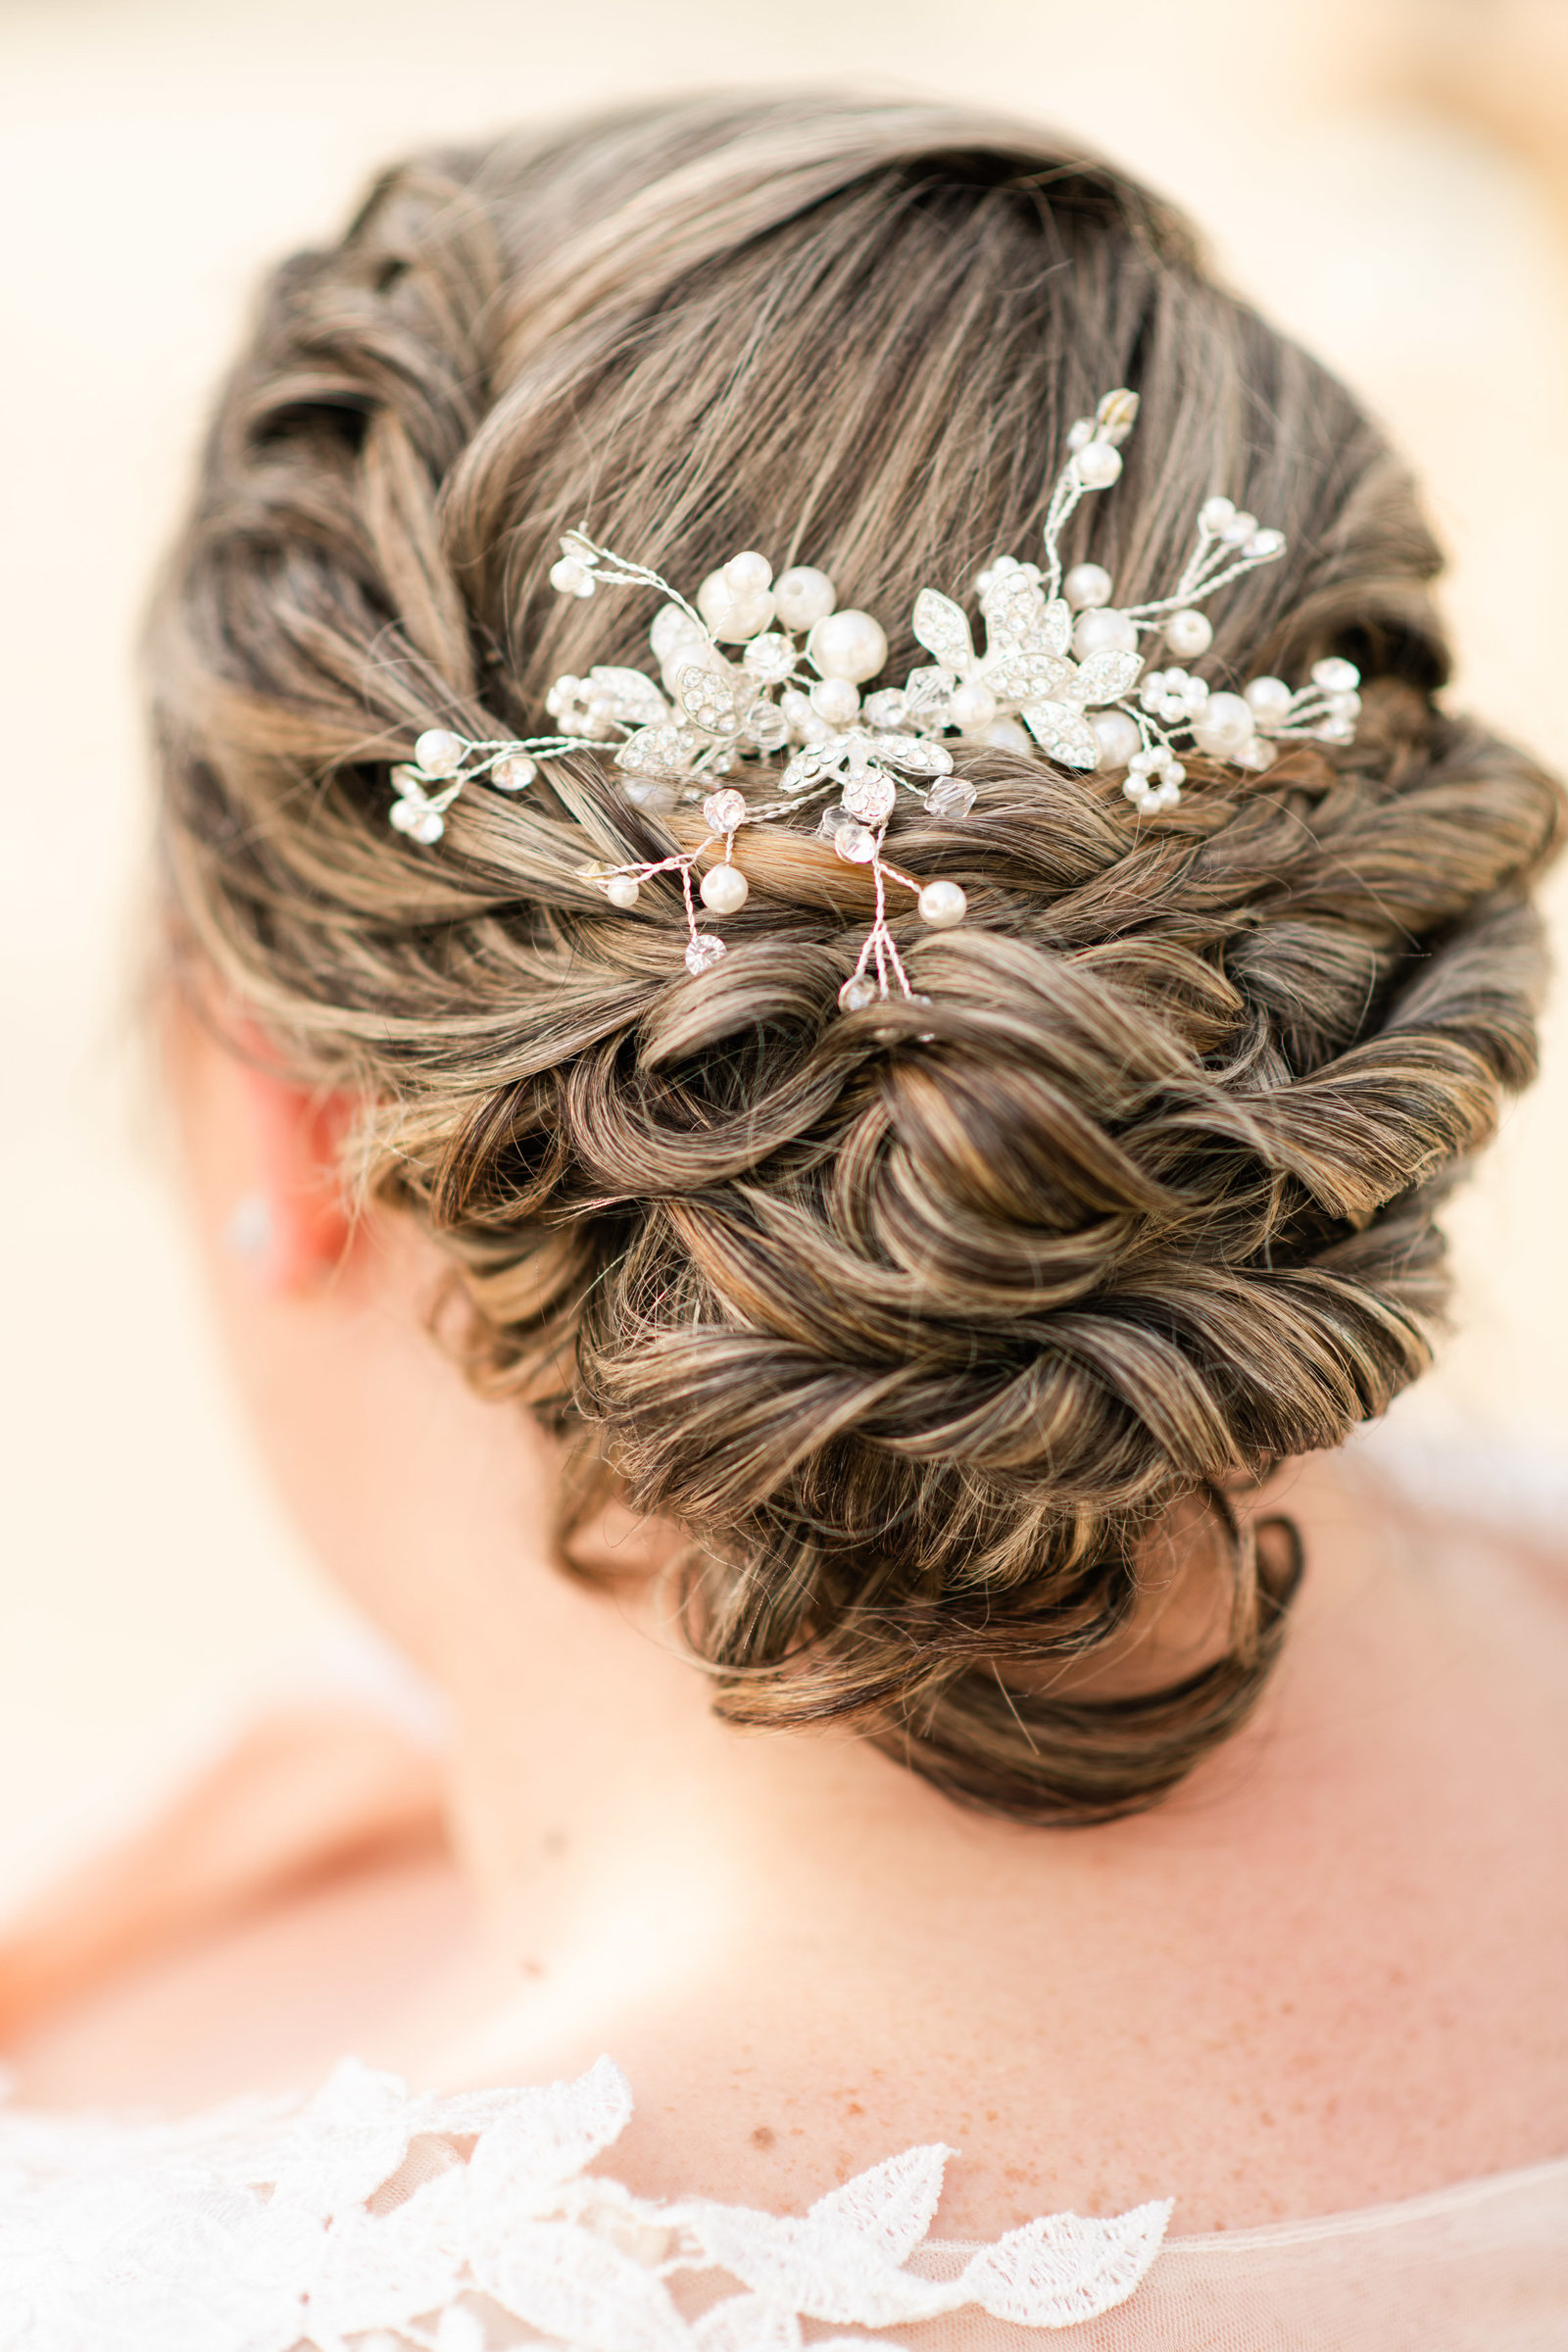 wedding hairstyle for bride with intricate hairpiece